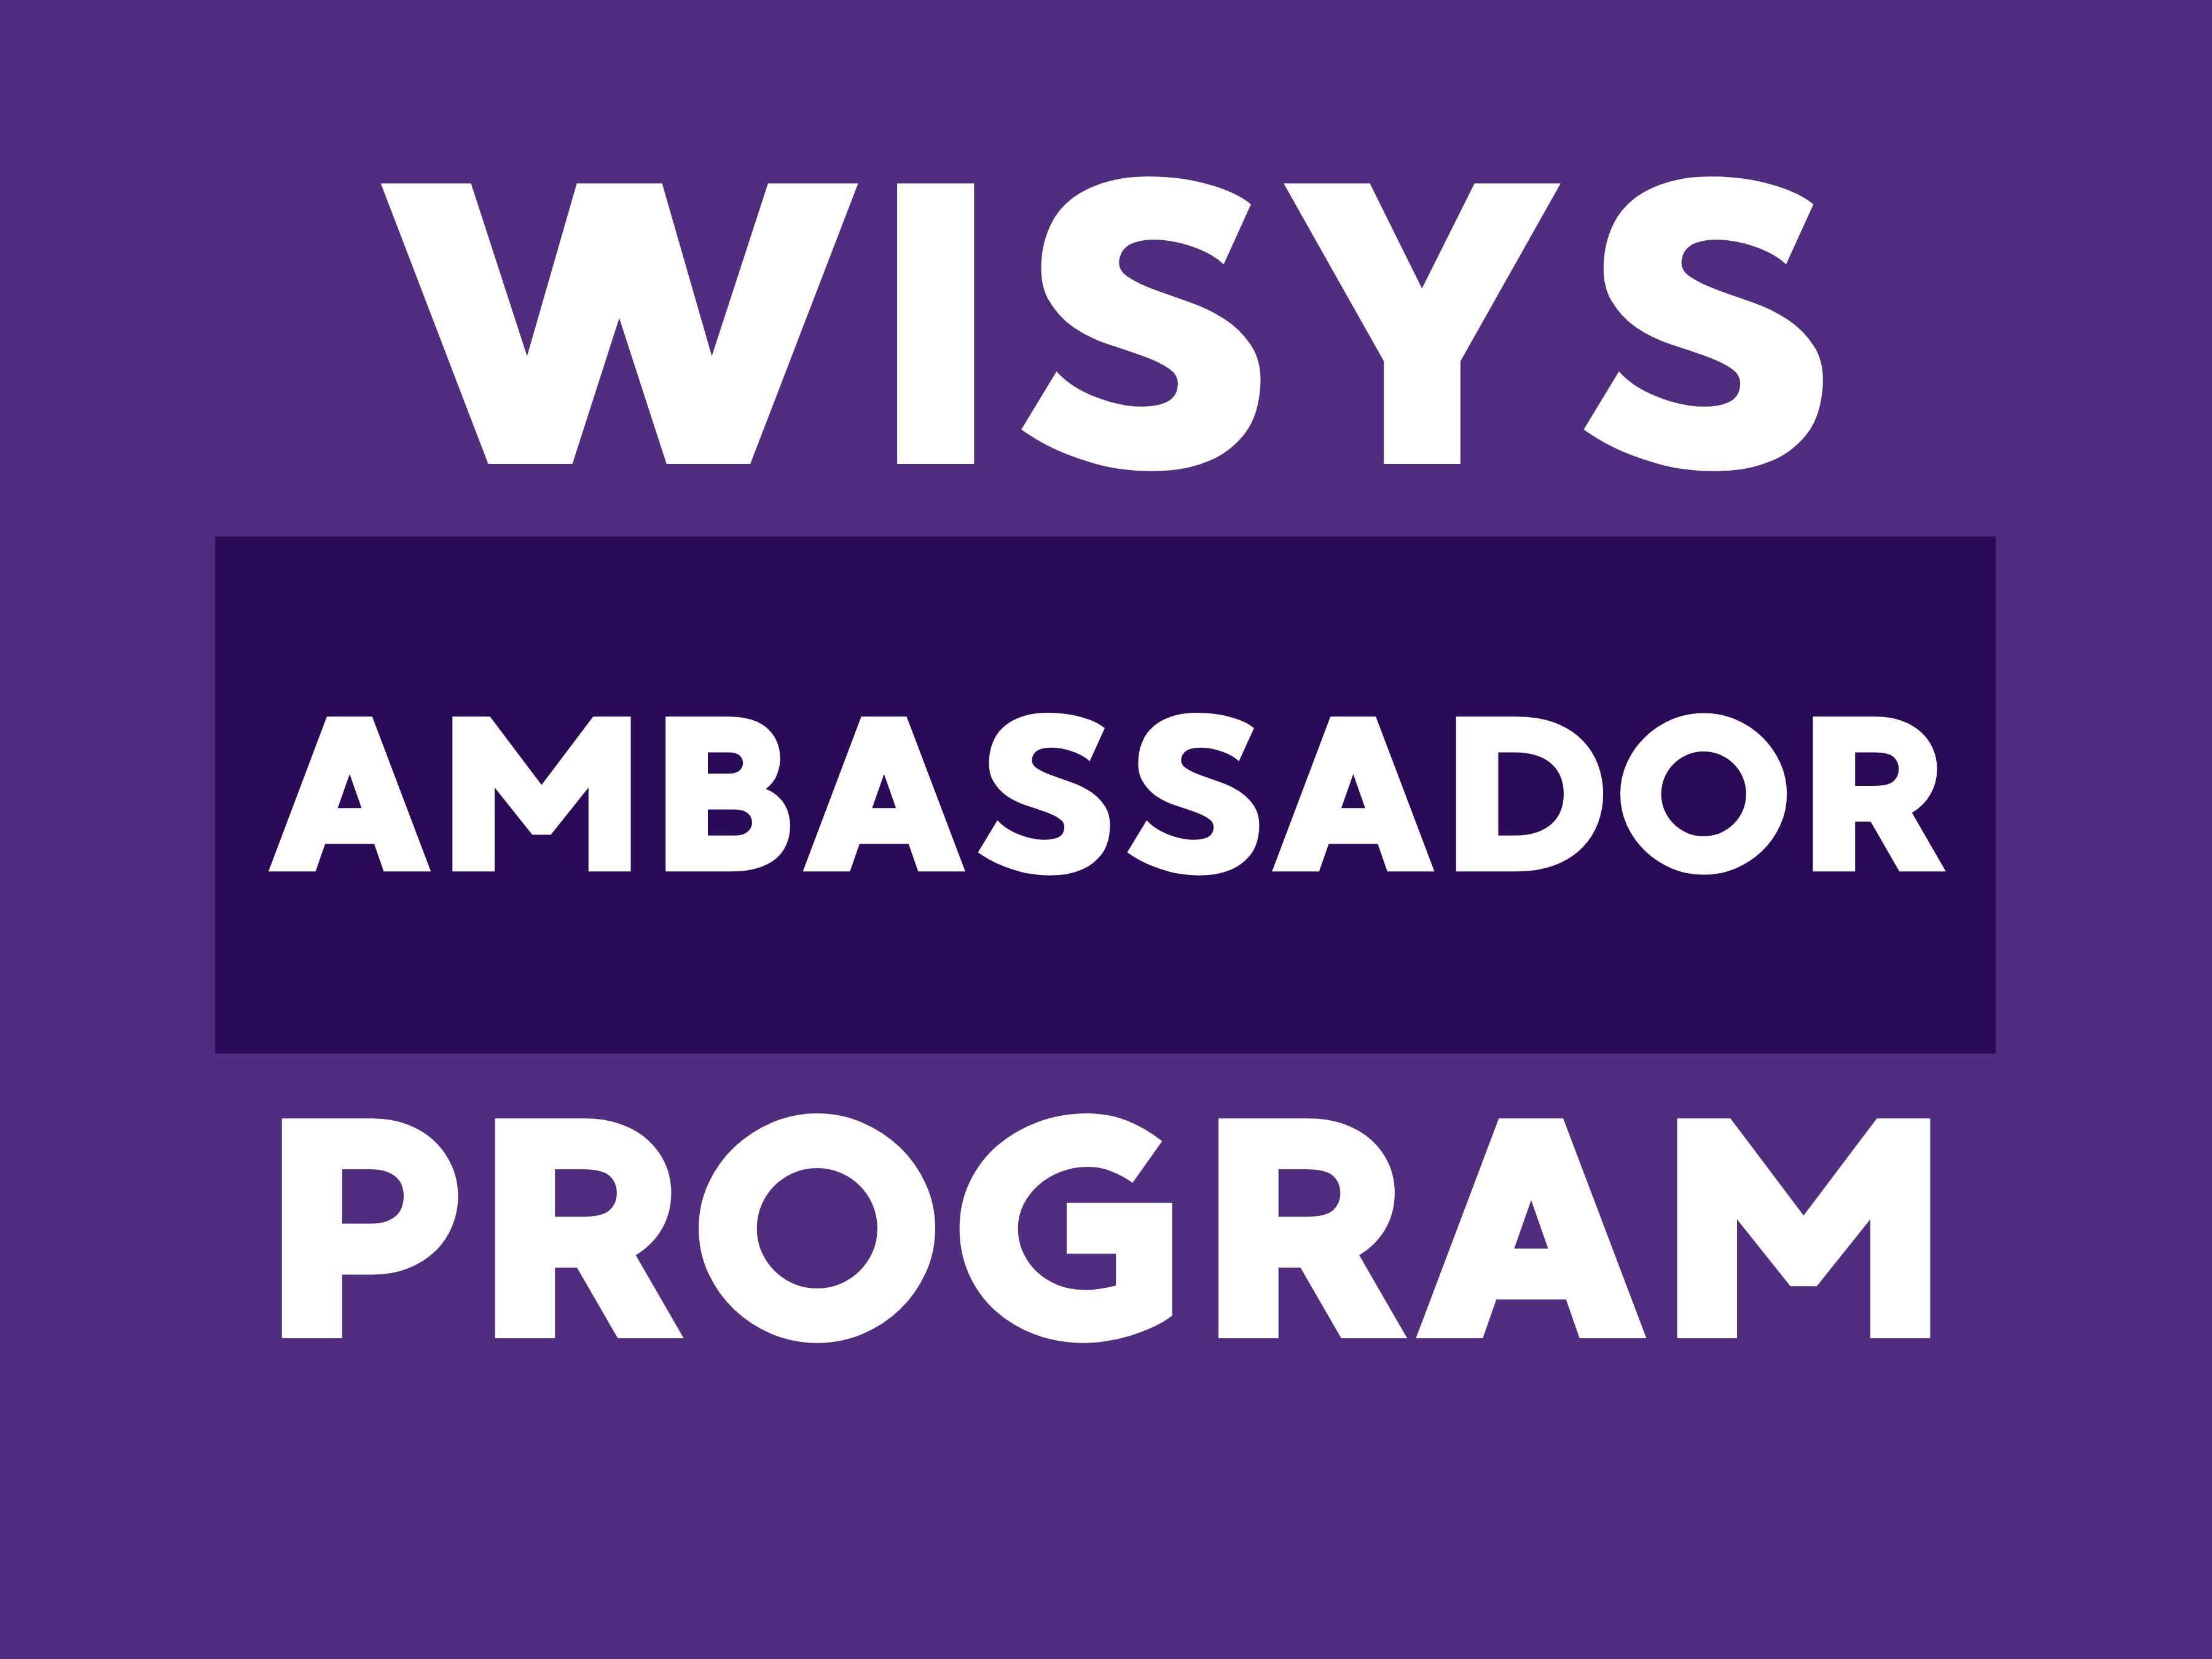 WiSys Ambassador Program